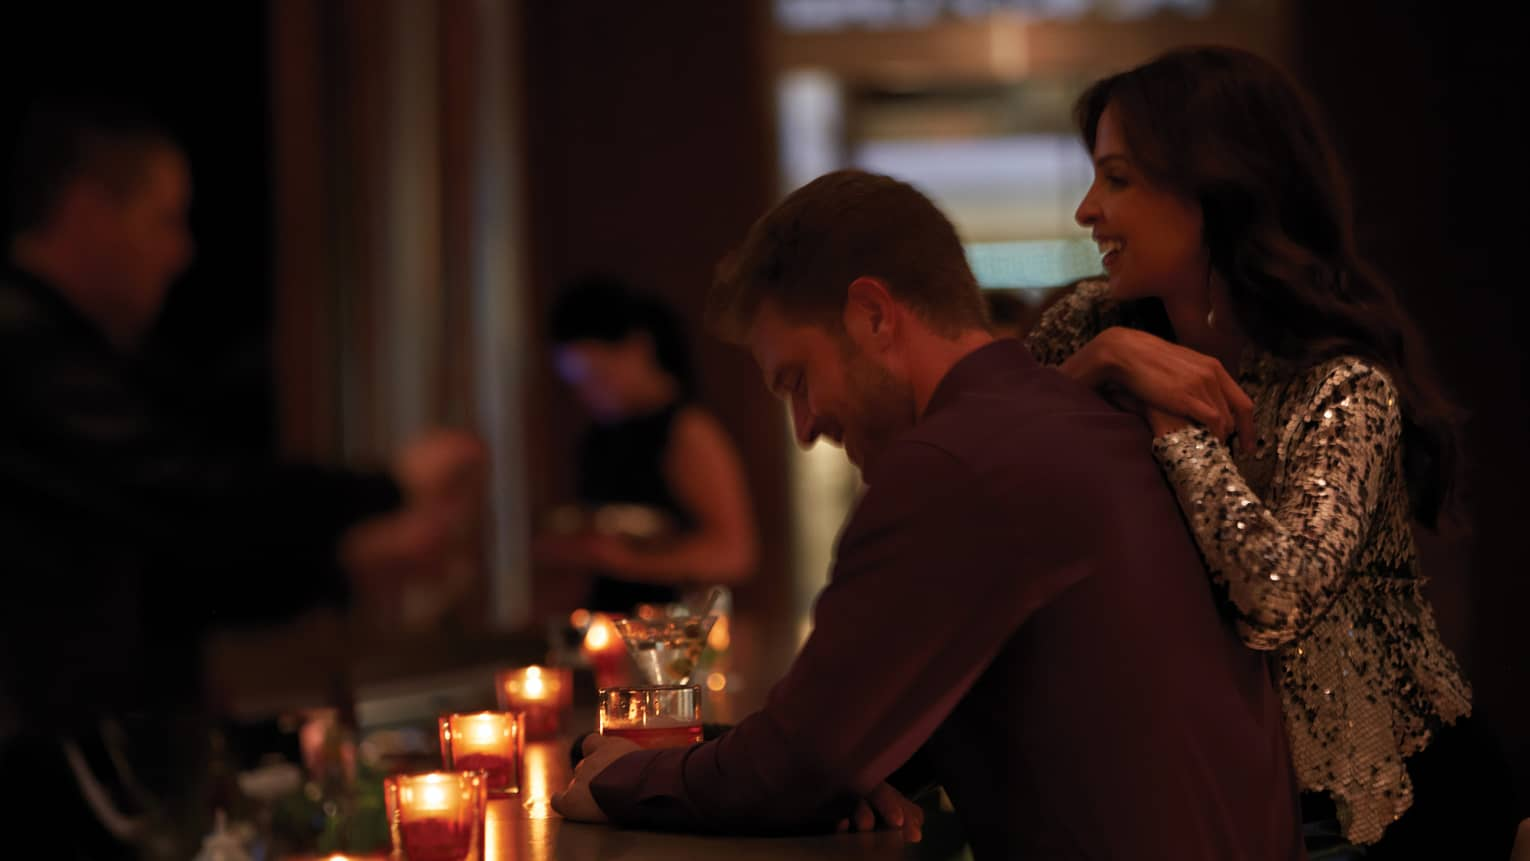 Woman in sequins blazer leans against man at candle-lit bar